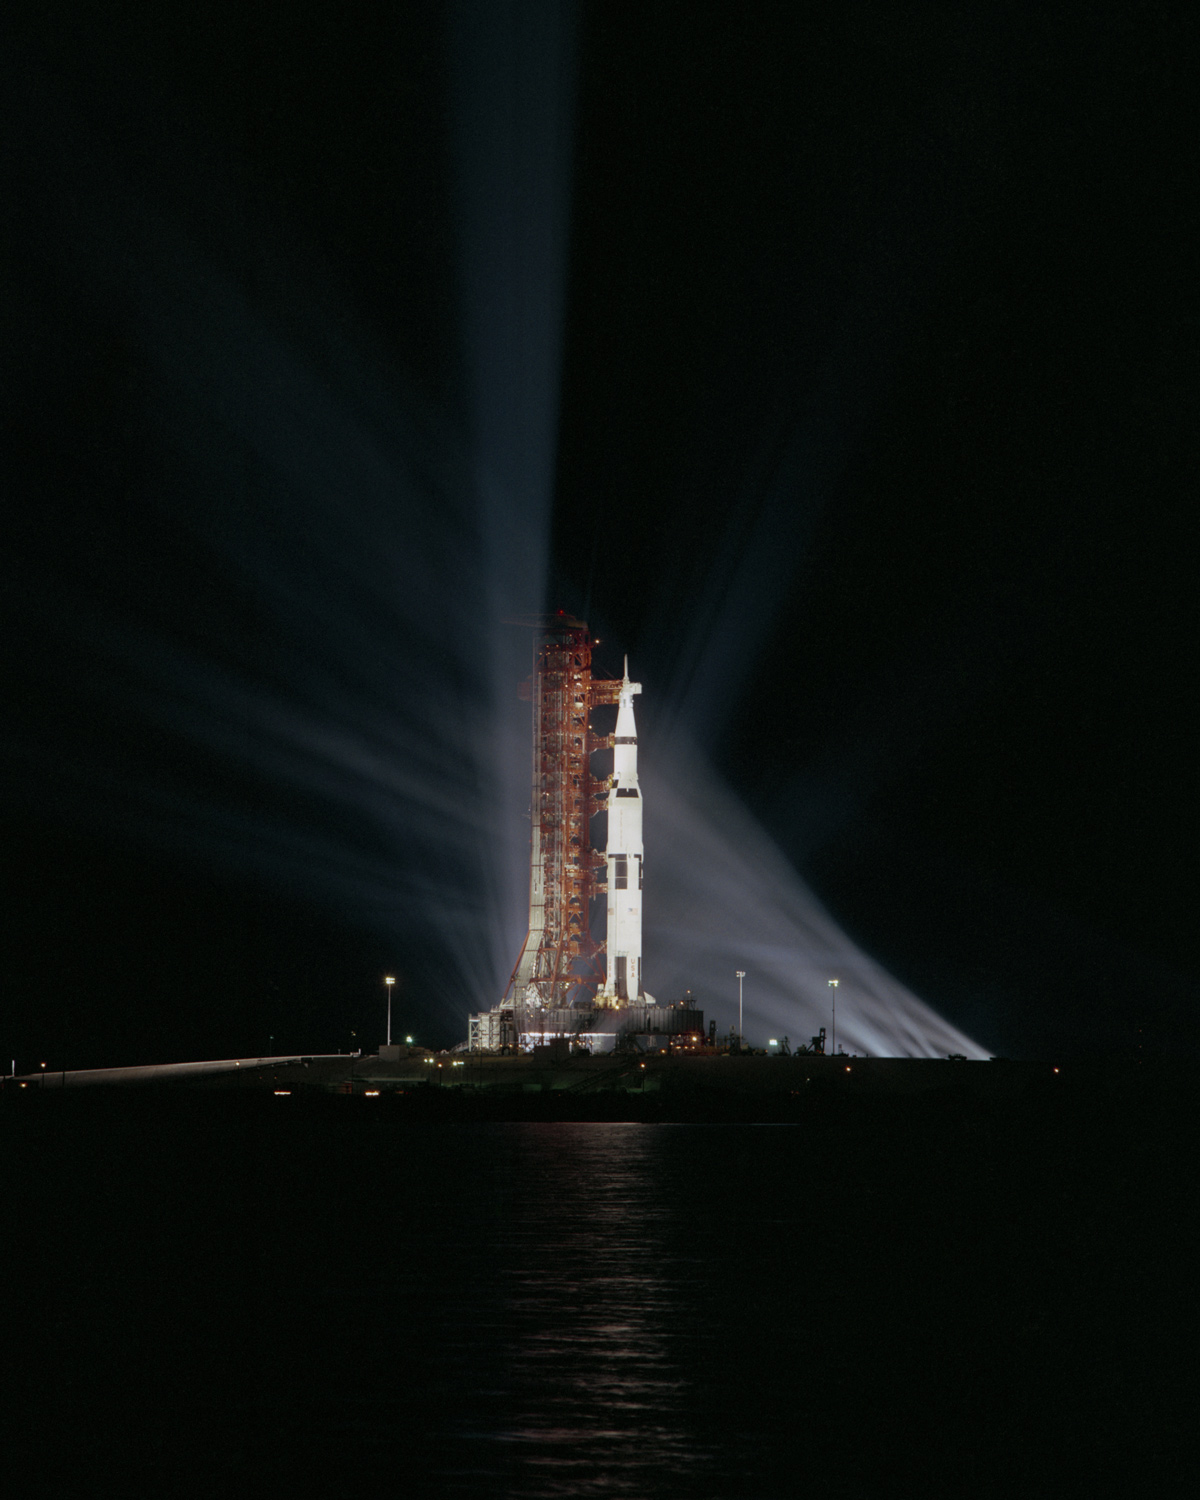 Searchlights illuminate the Apollo 8 spacecraft at night